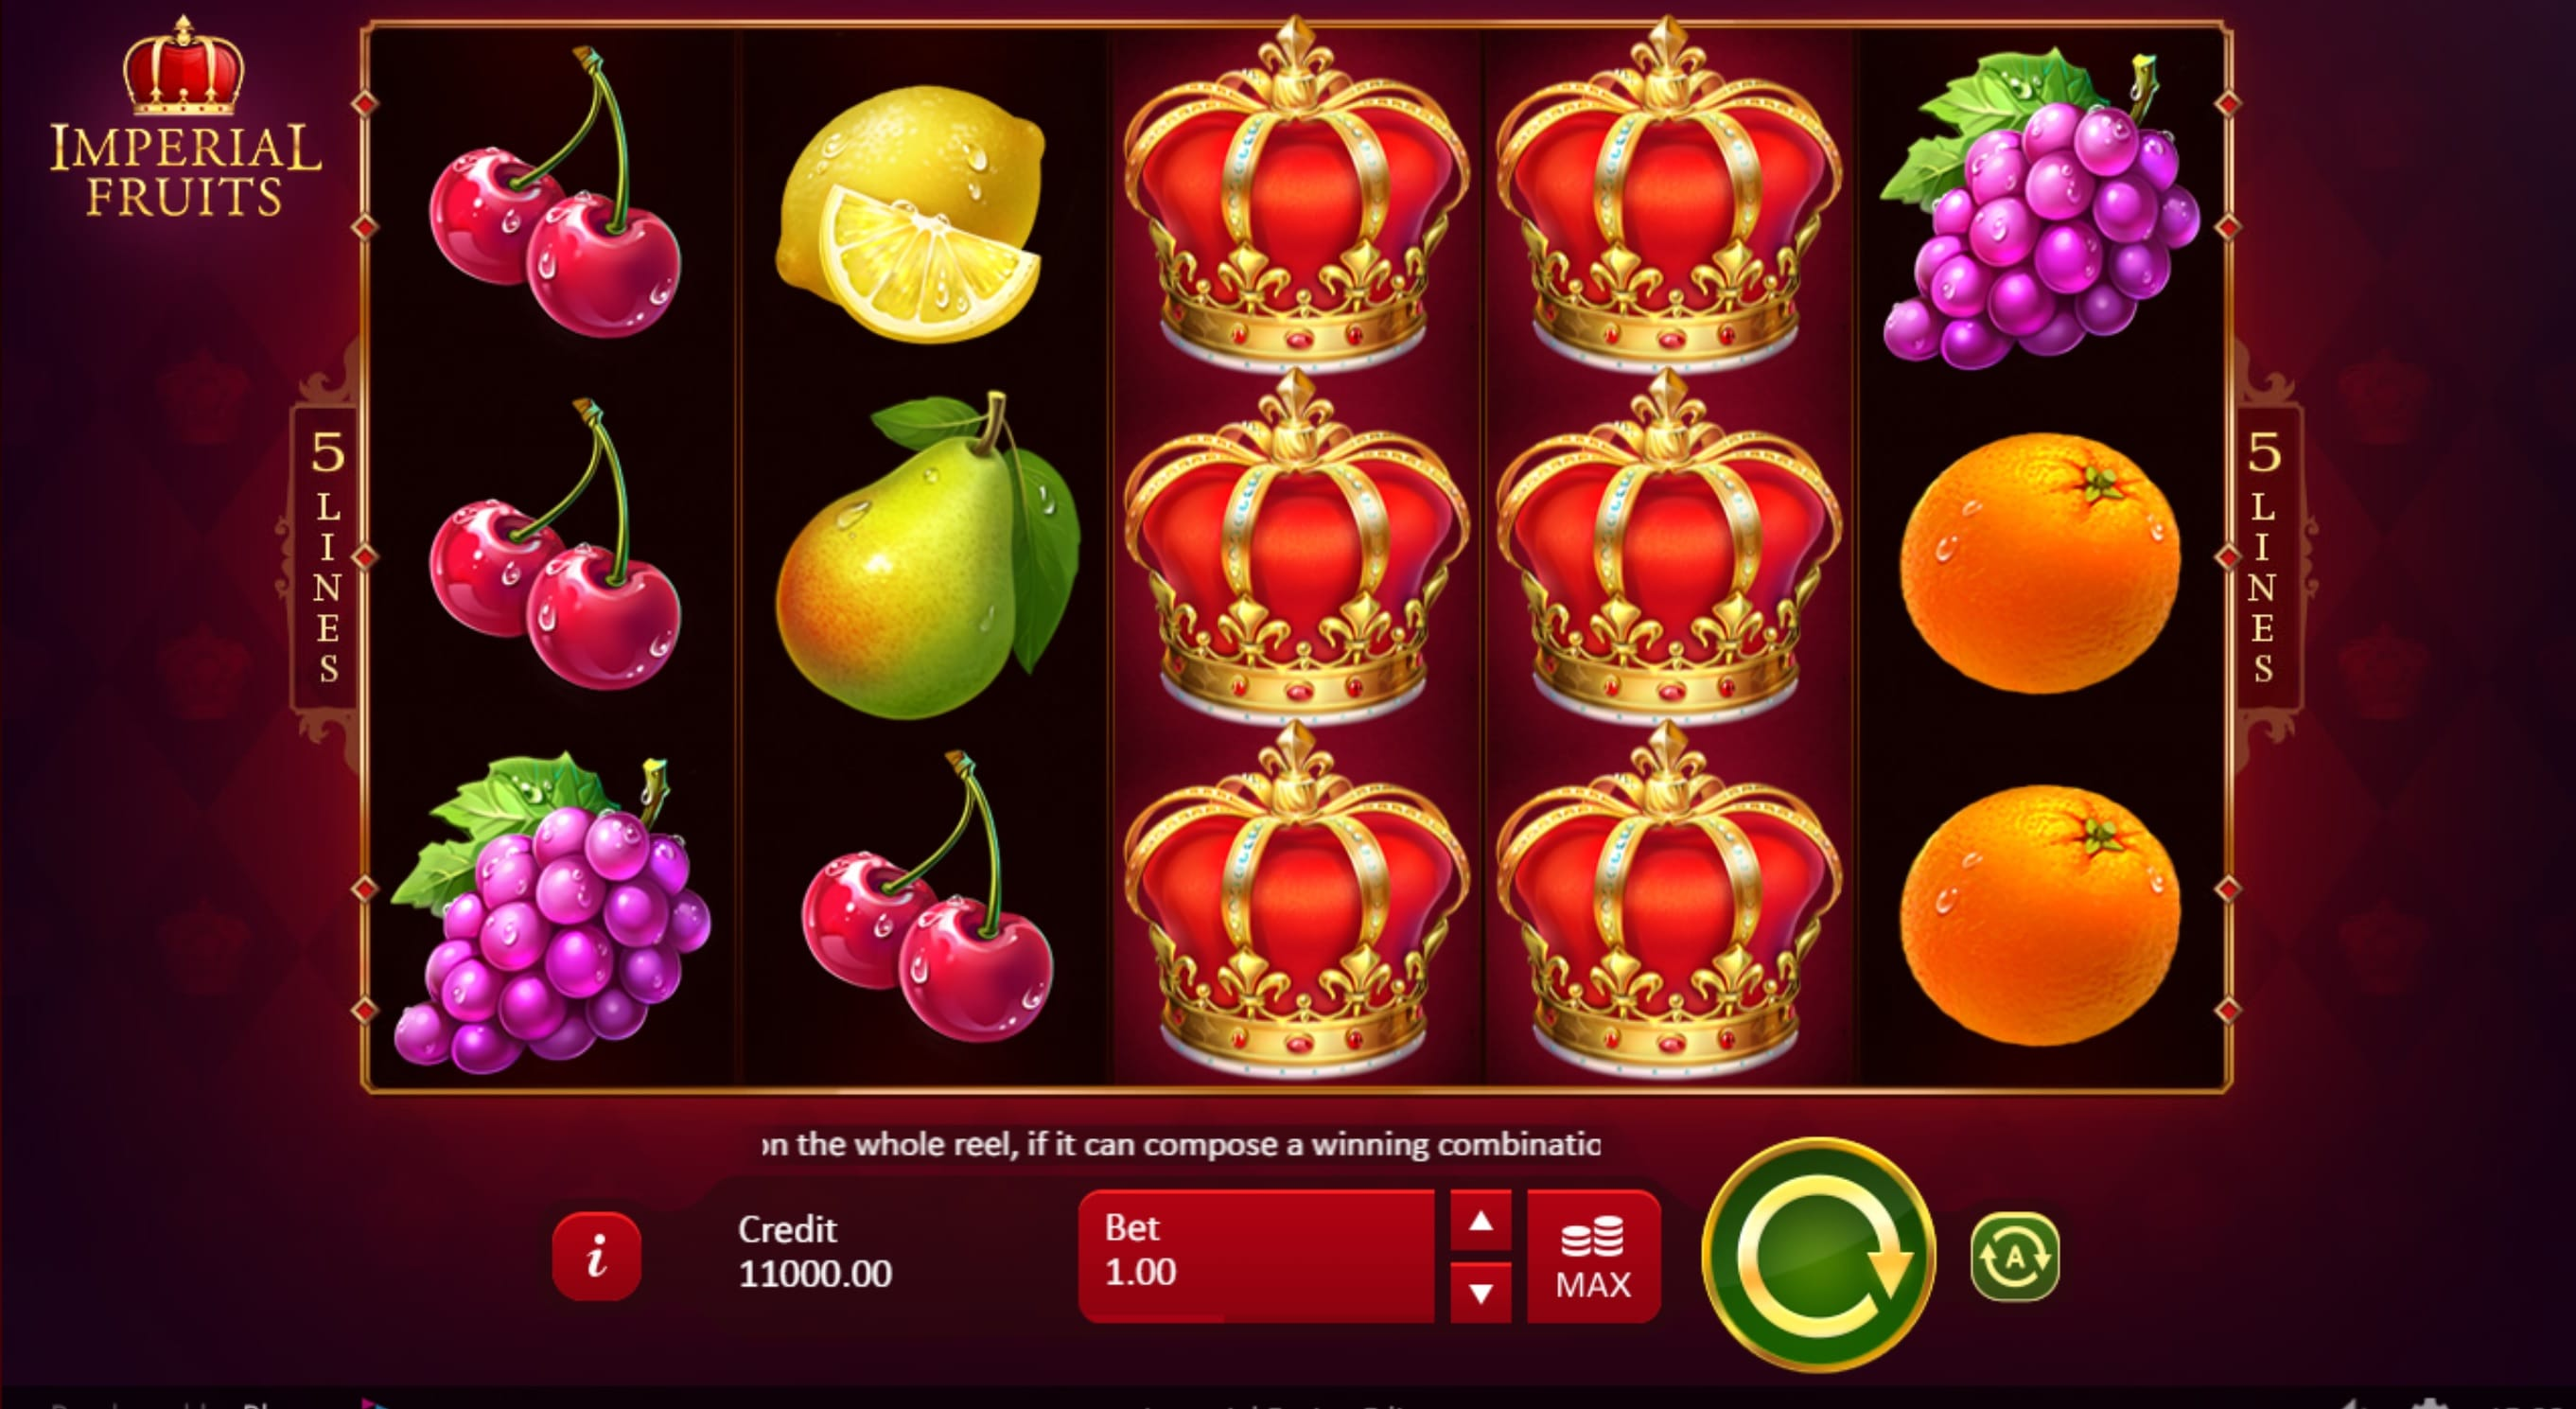 Imperial Fruits: 5 Lines Gameplay Casino